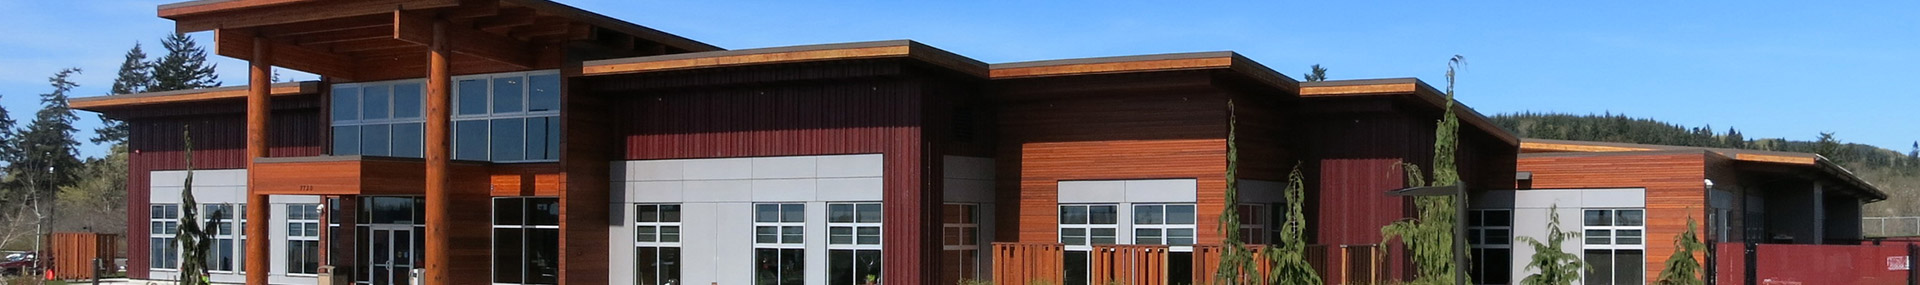 Betty J. Taylor Tulalip Early Learning Academy building